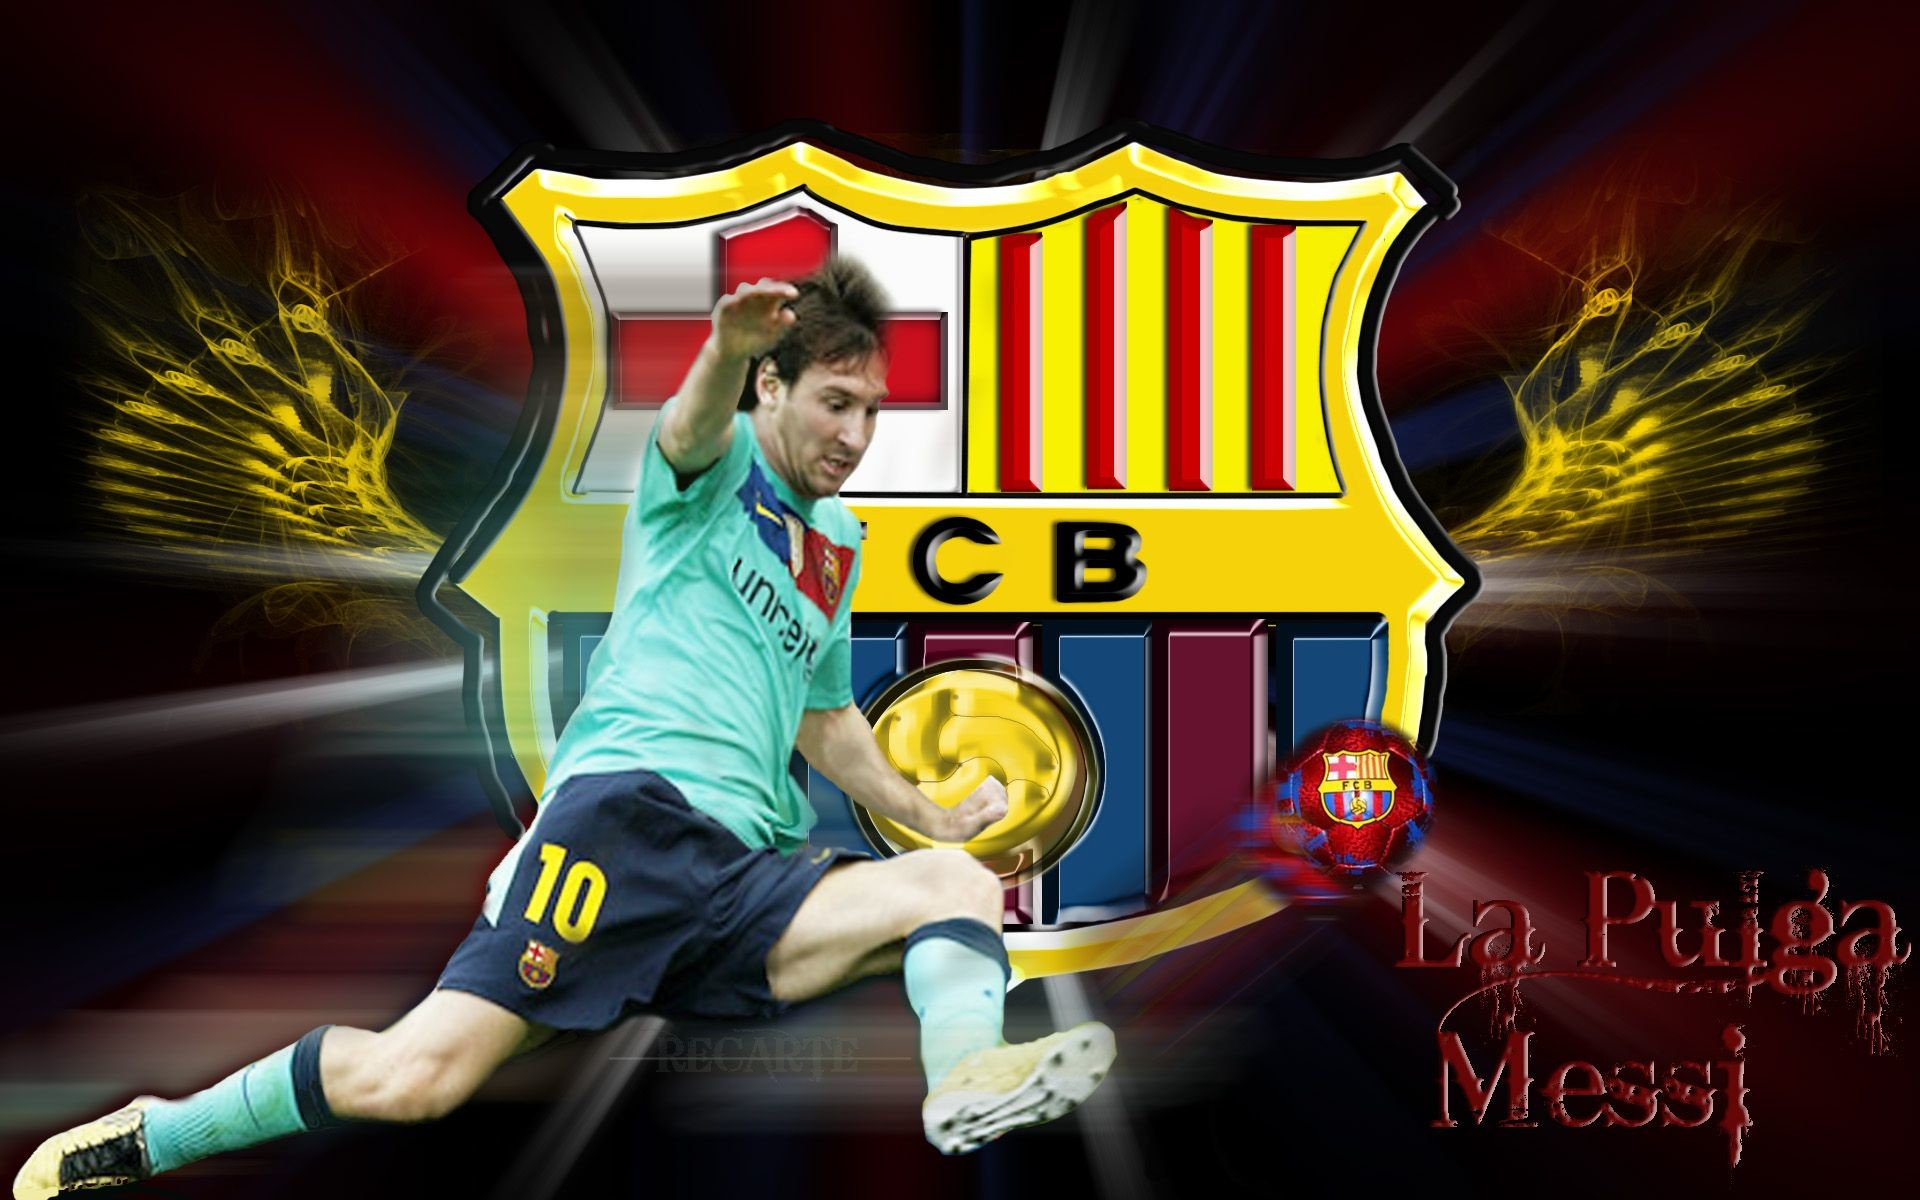 1920x1200 Cool Lionel Messi Wallpaper For Mobile